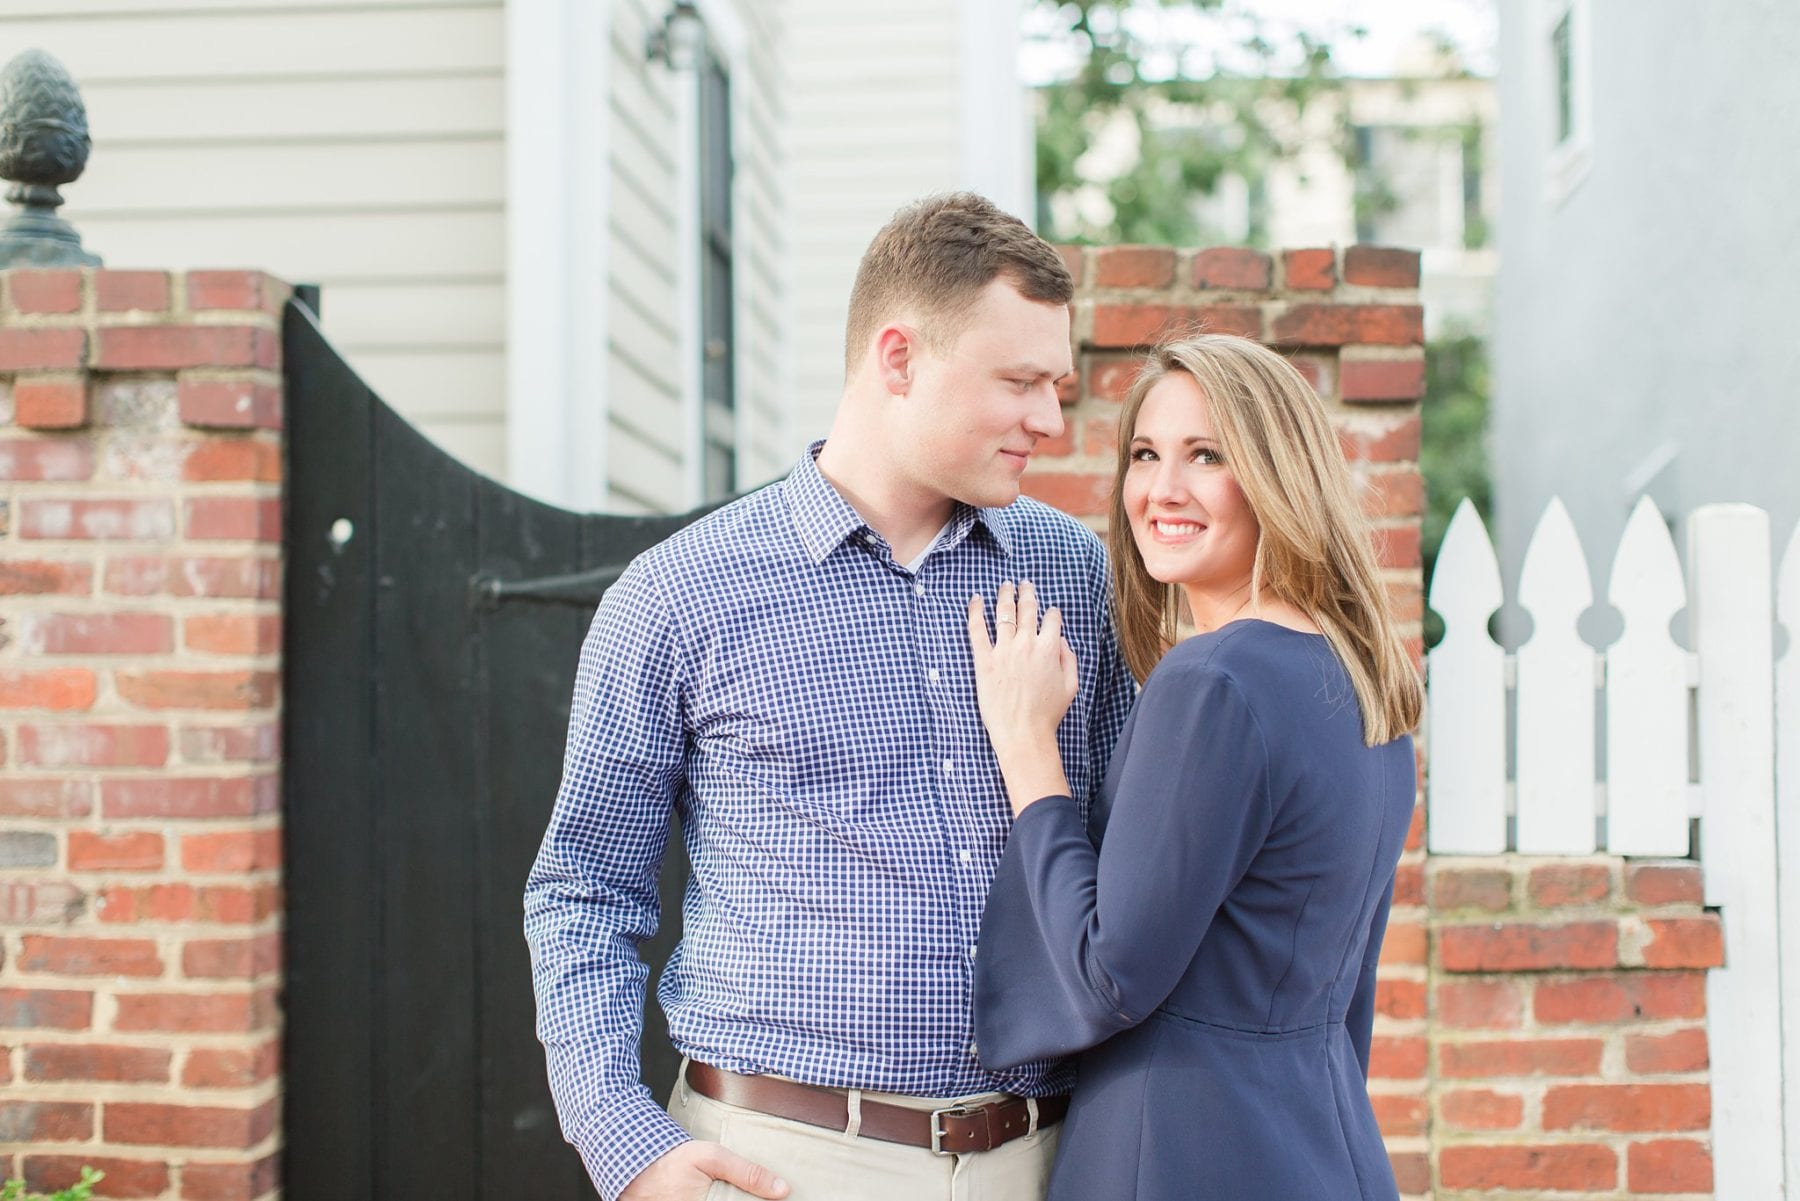 Springtime Old Town Alexandria Engagement Session Matt & Maxie Megan Kelsey Photography-70.jpg